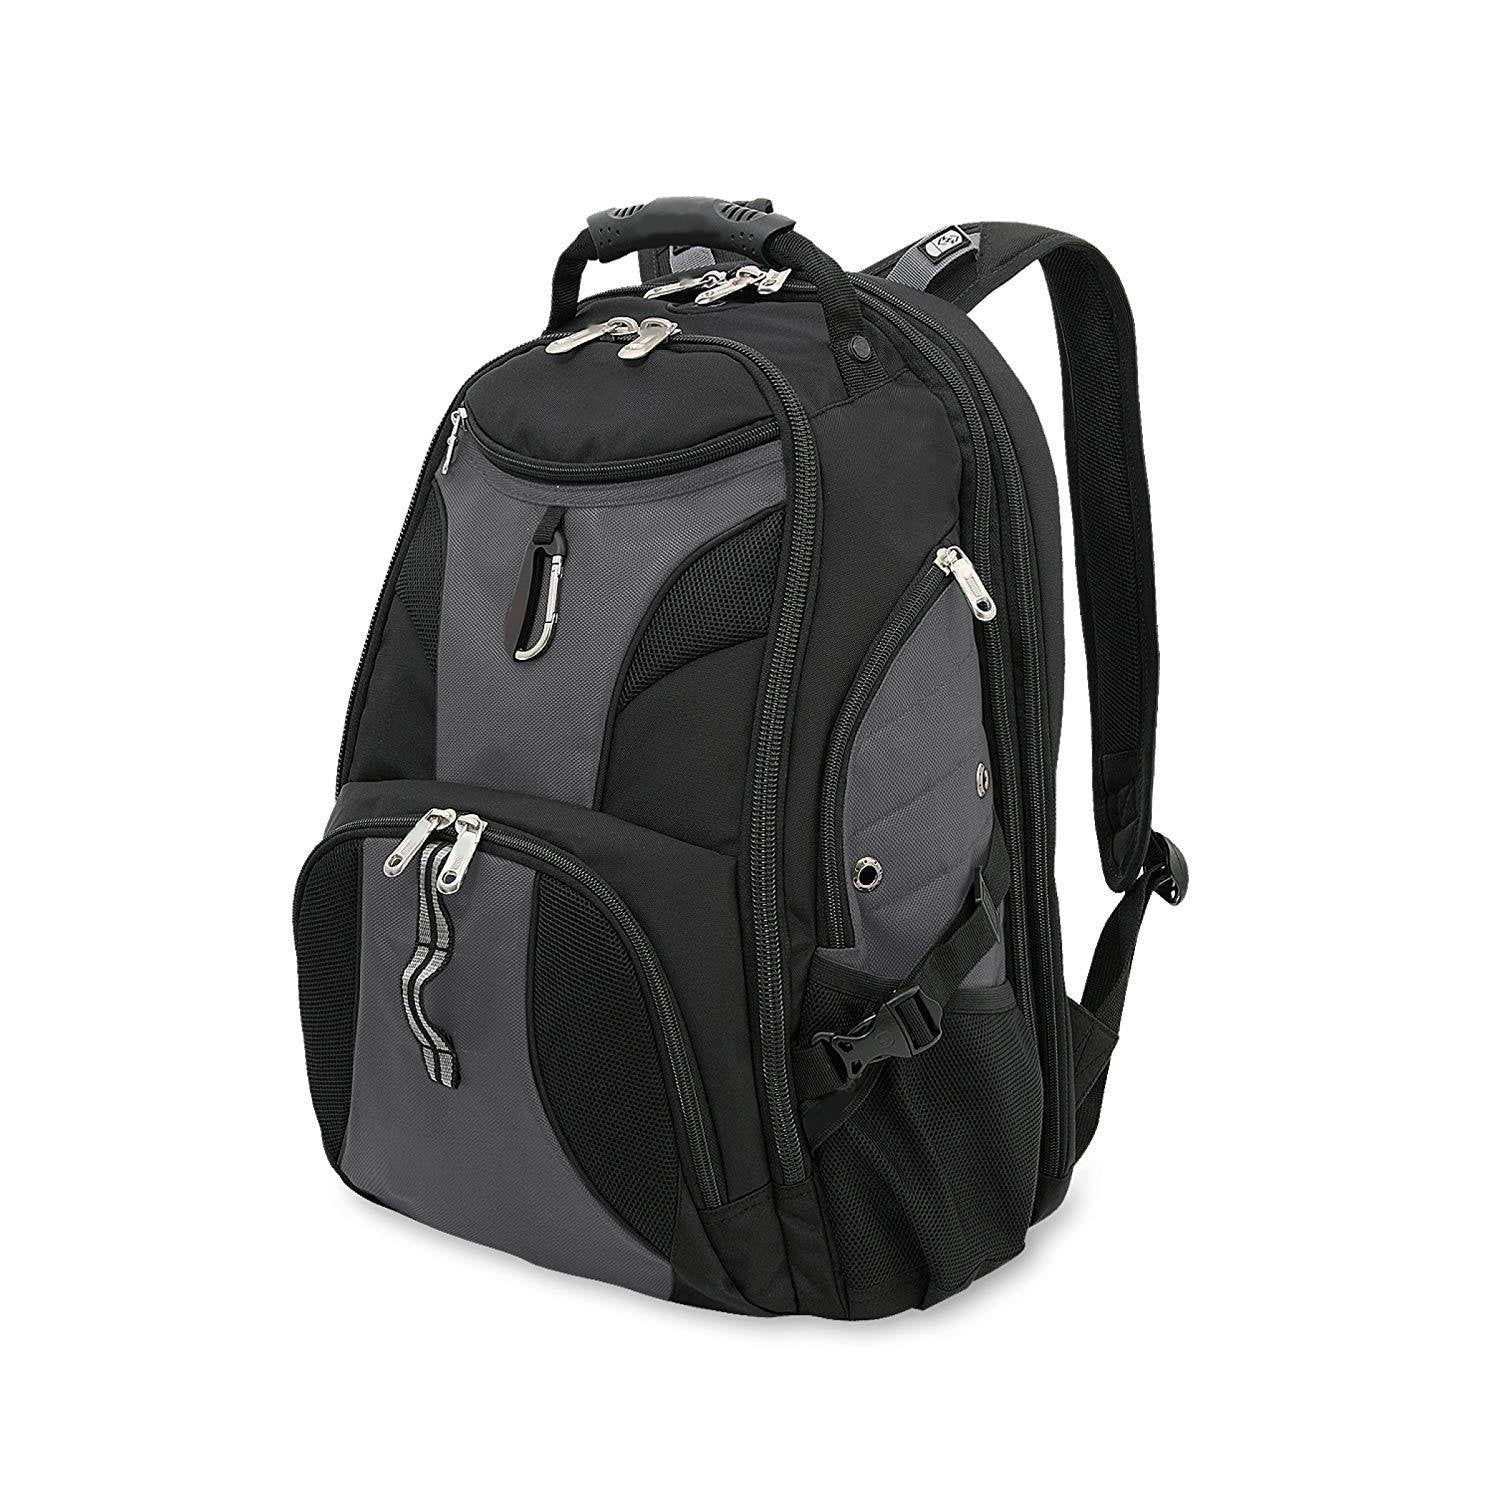 1200d Ballistic Polyester Laptop Backpack